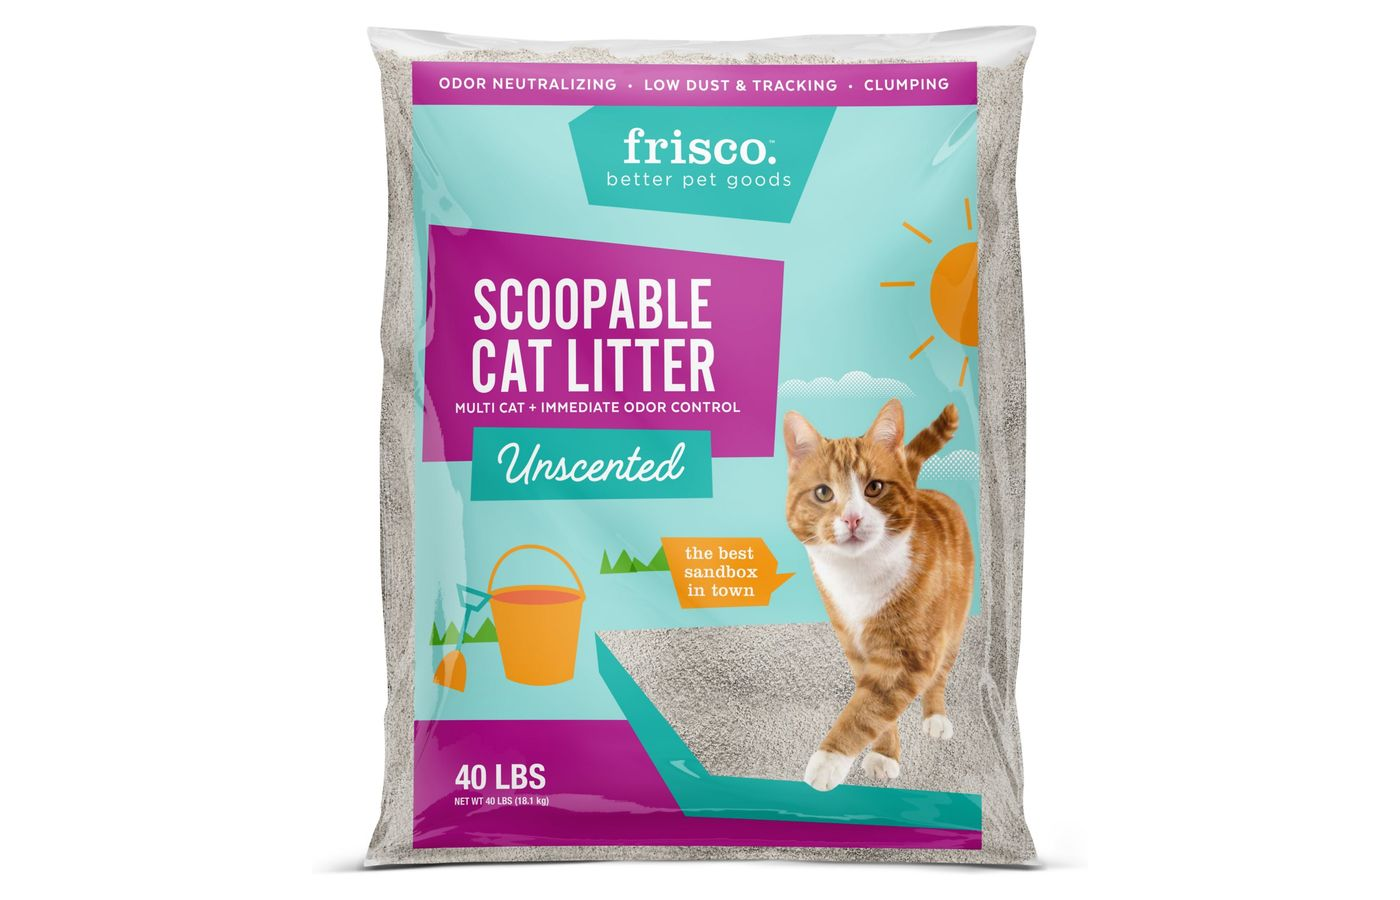 Frisco Multi-Cat Clumping Litter